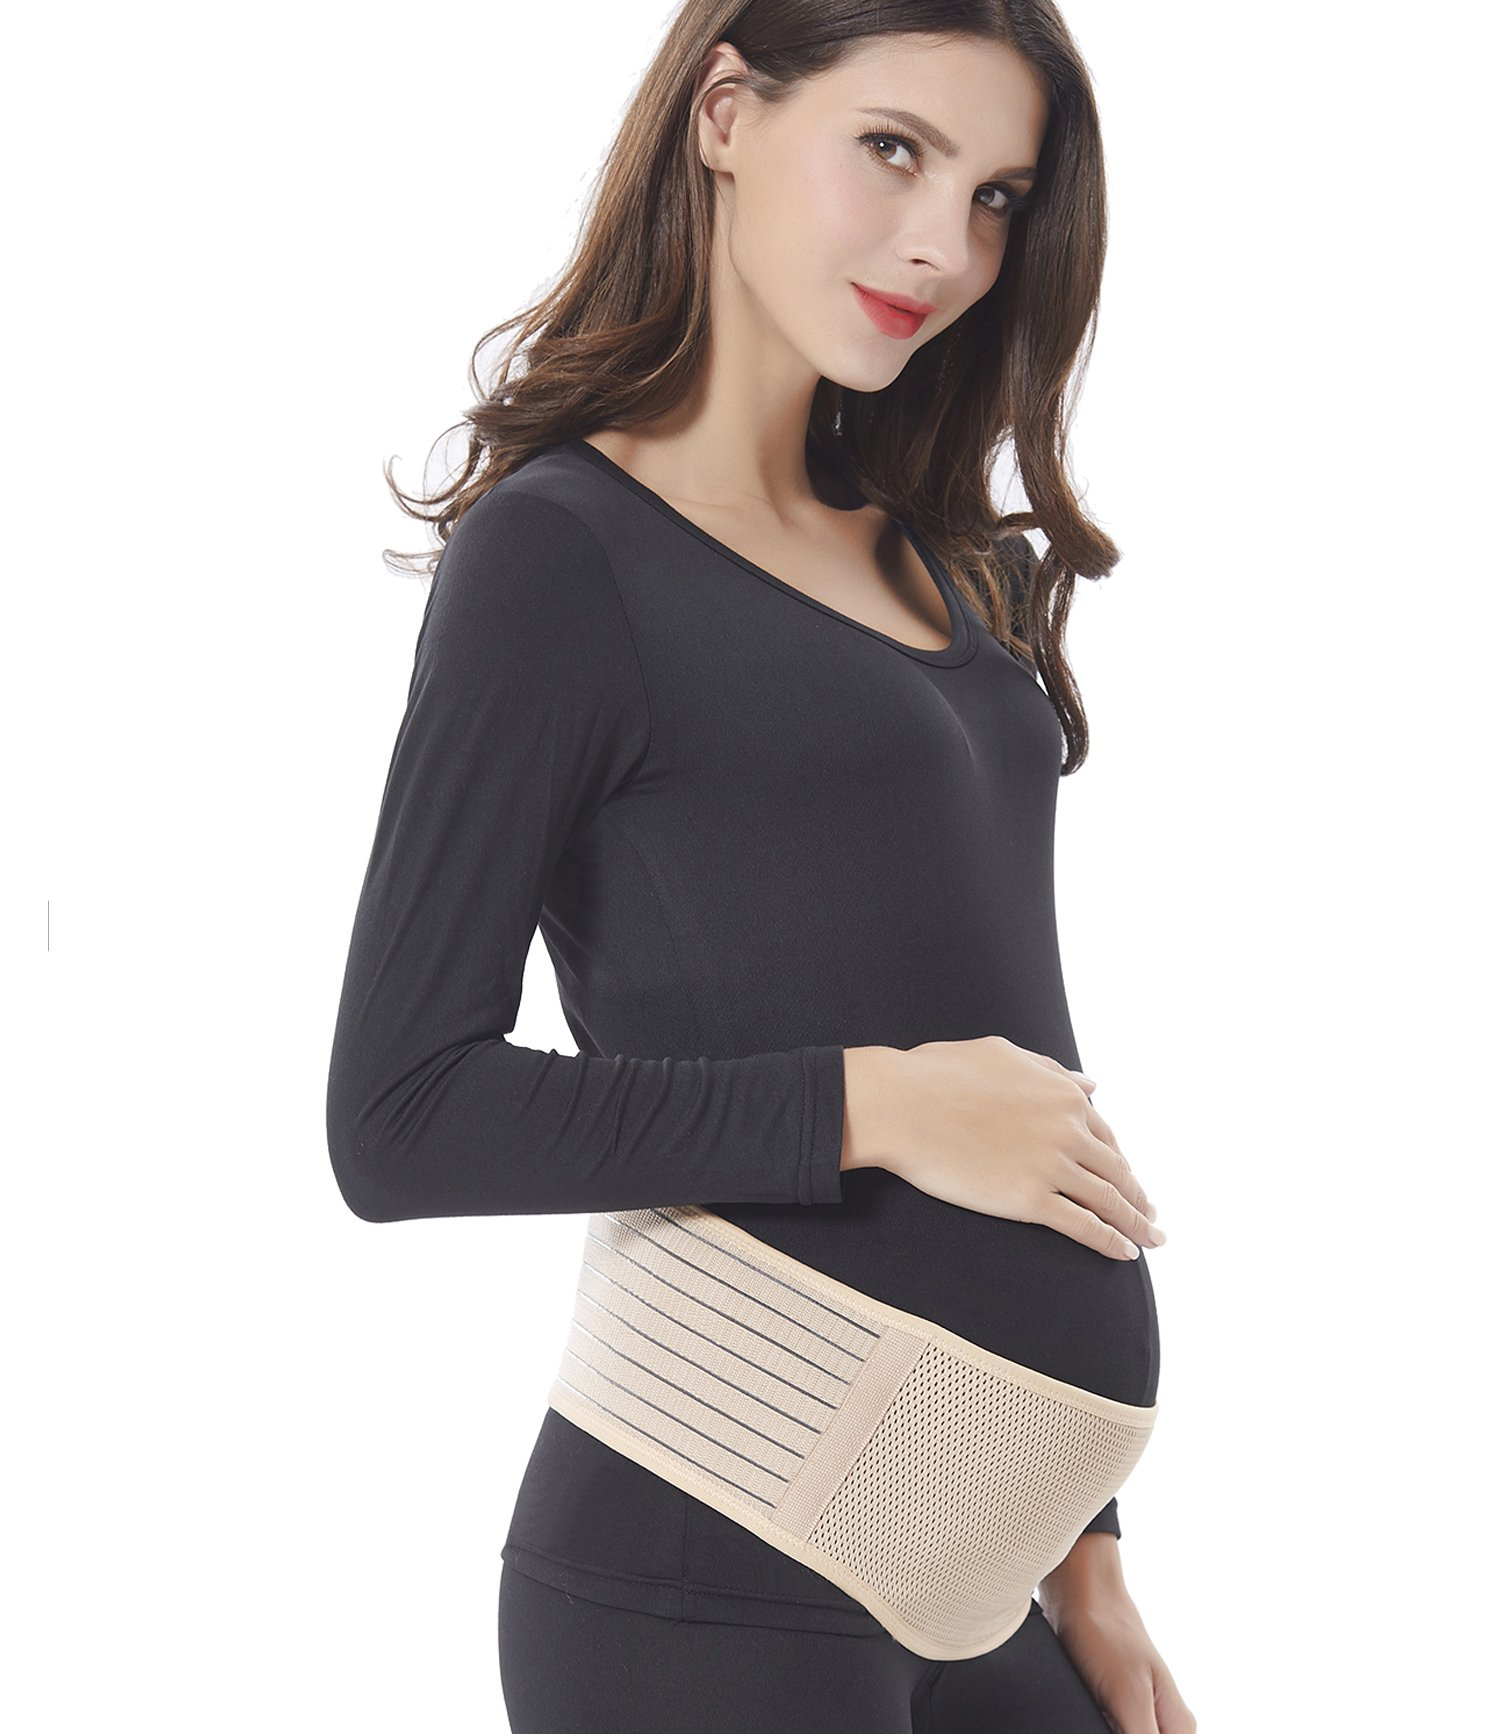 Maternity Belt - Babo Care Breathable Lower Back and Pelvic Support - Comfortable Belly Band for Pregnancy - Prenatal Cradle for Baby - One Size,Nude Color